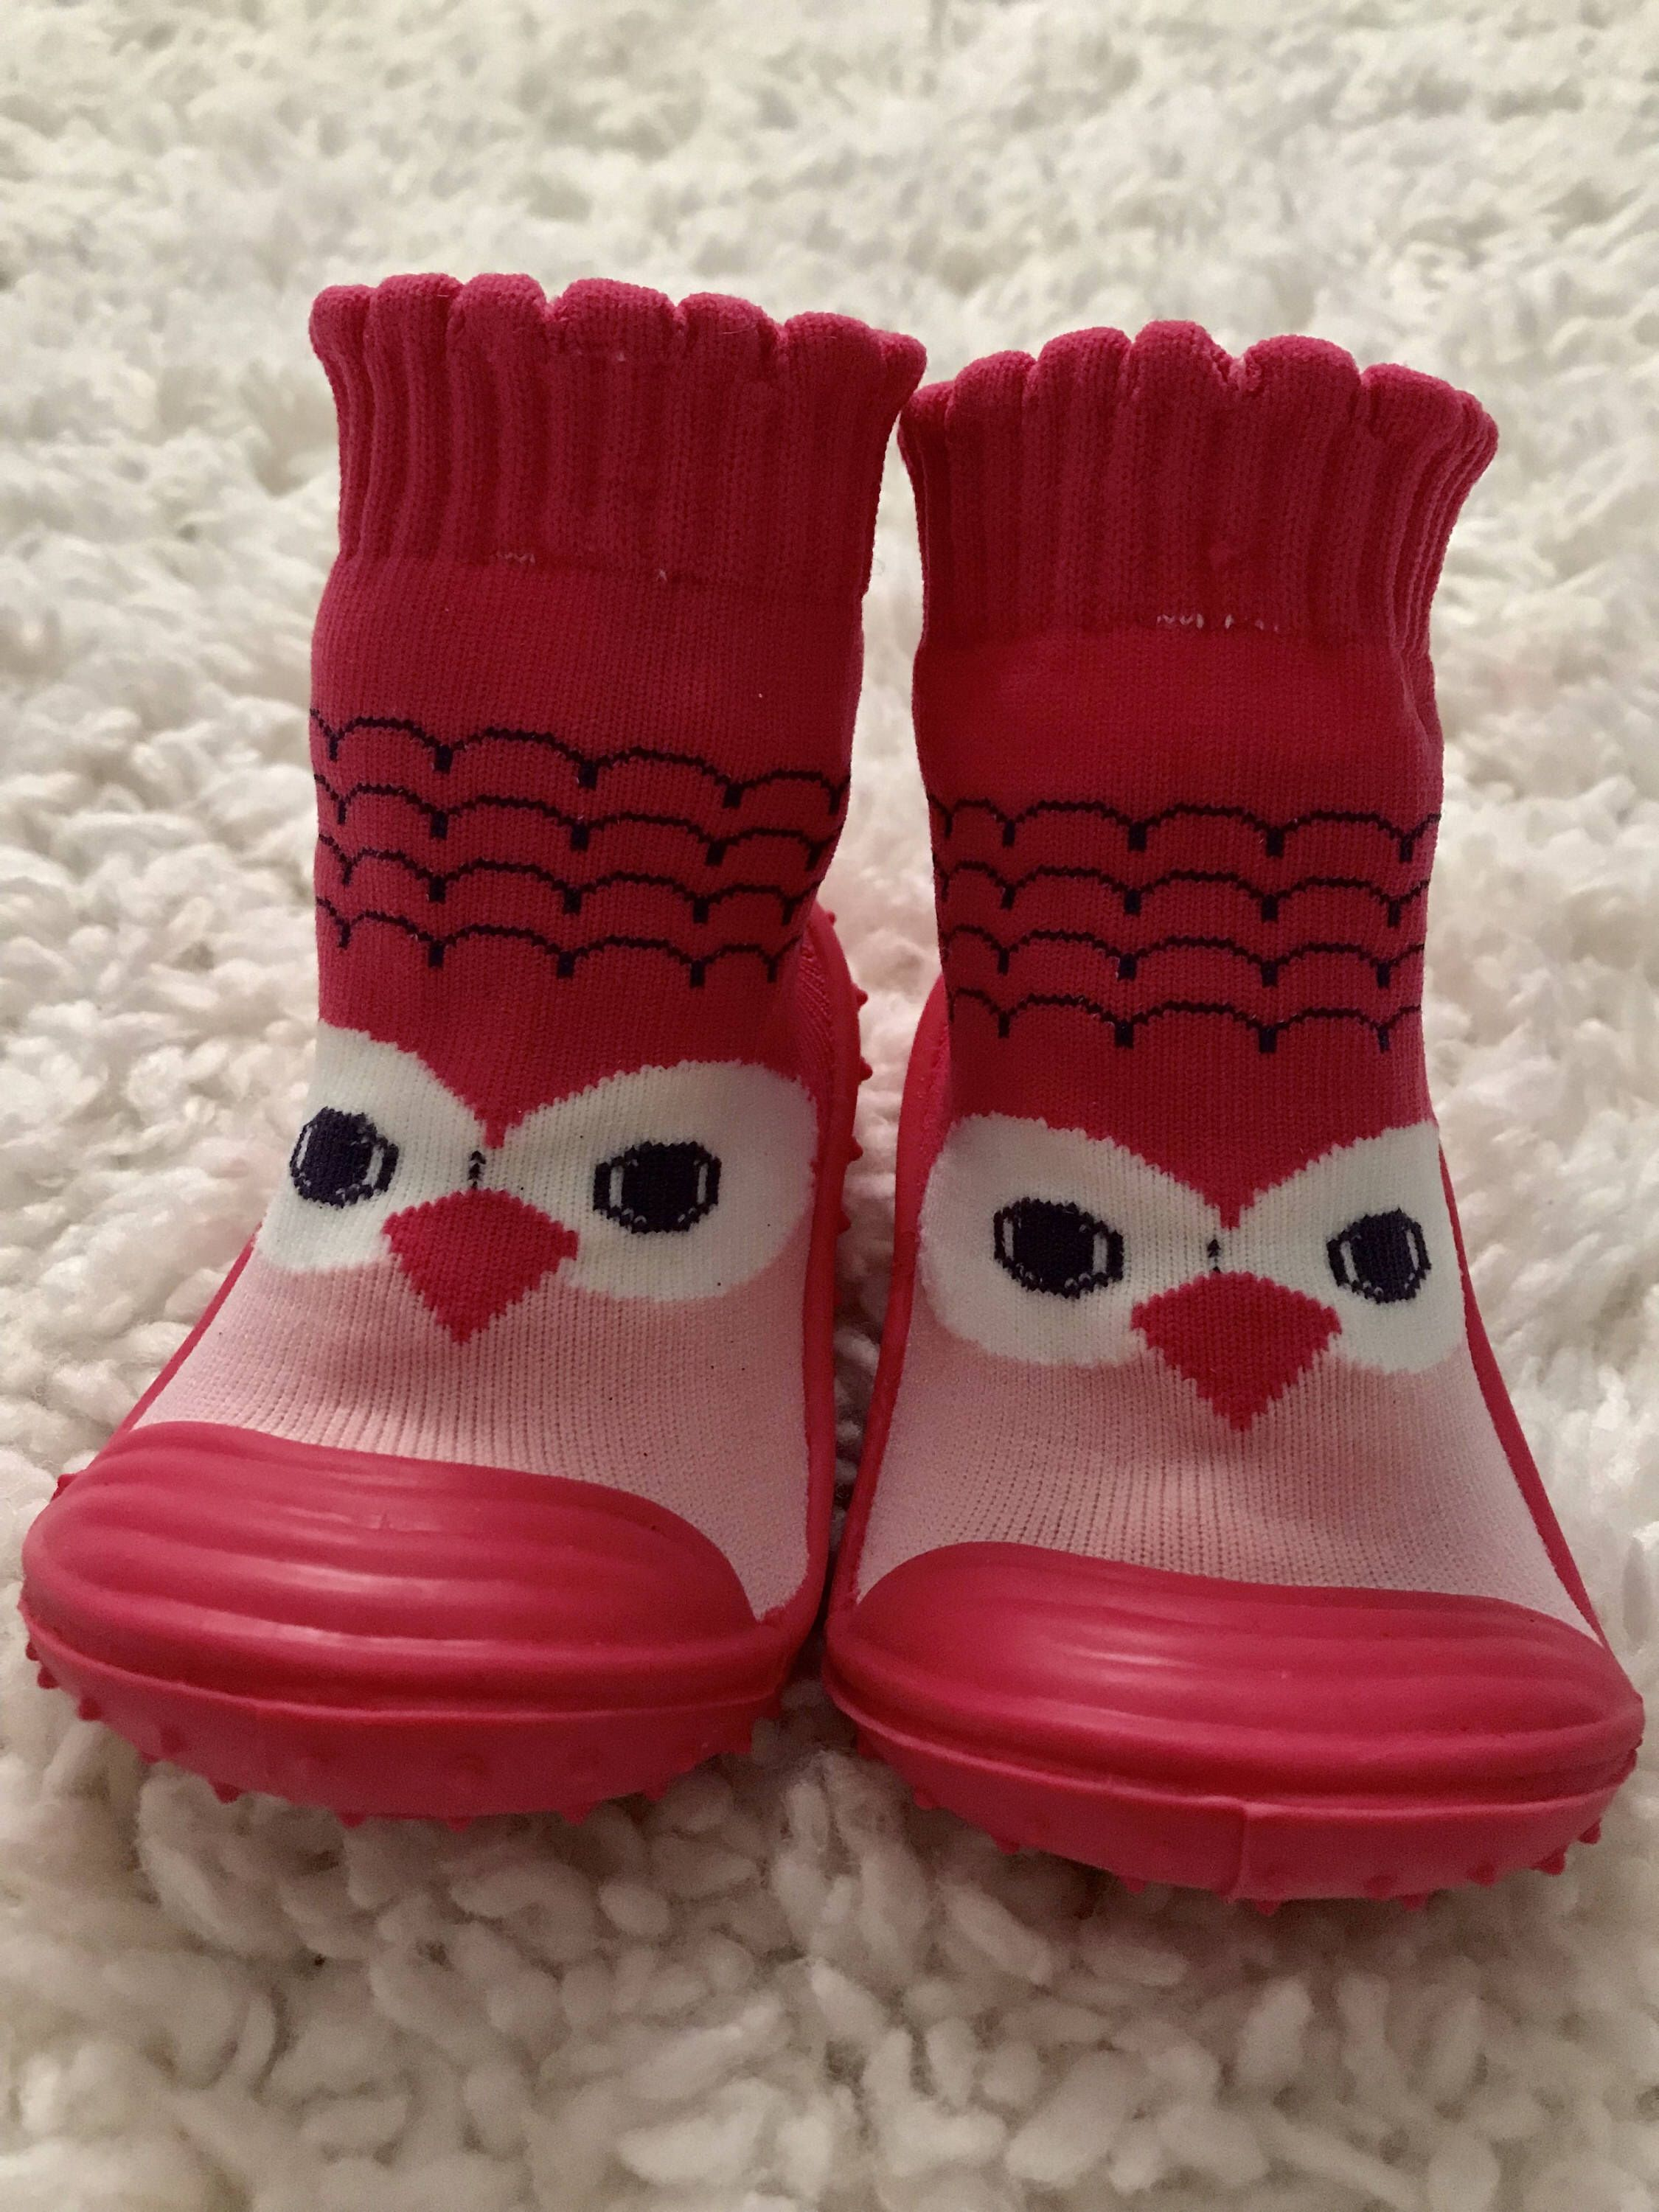 Pin by Dream Baby Shoes & Accessories on Dream Baby Sock Shoes